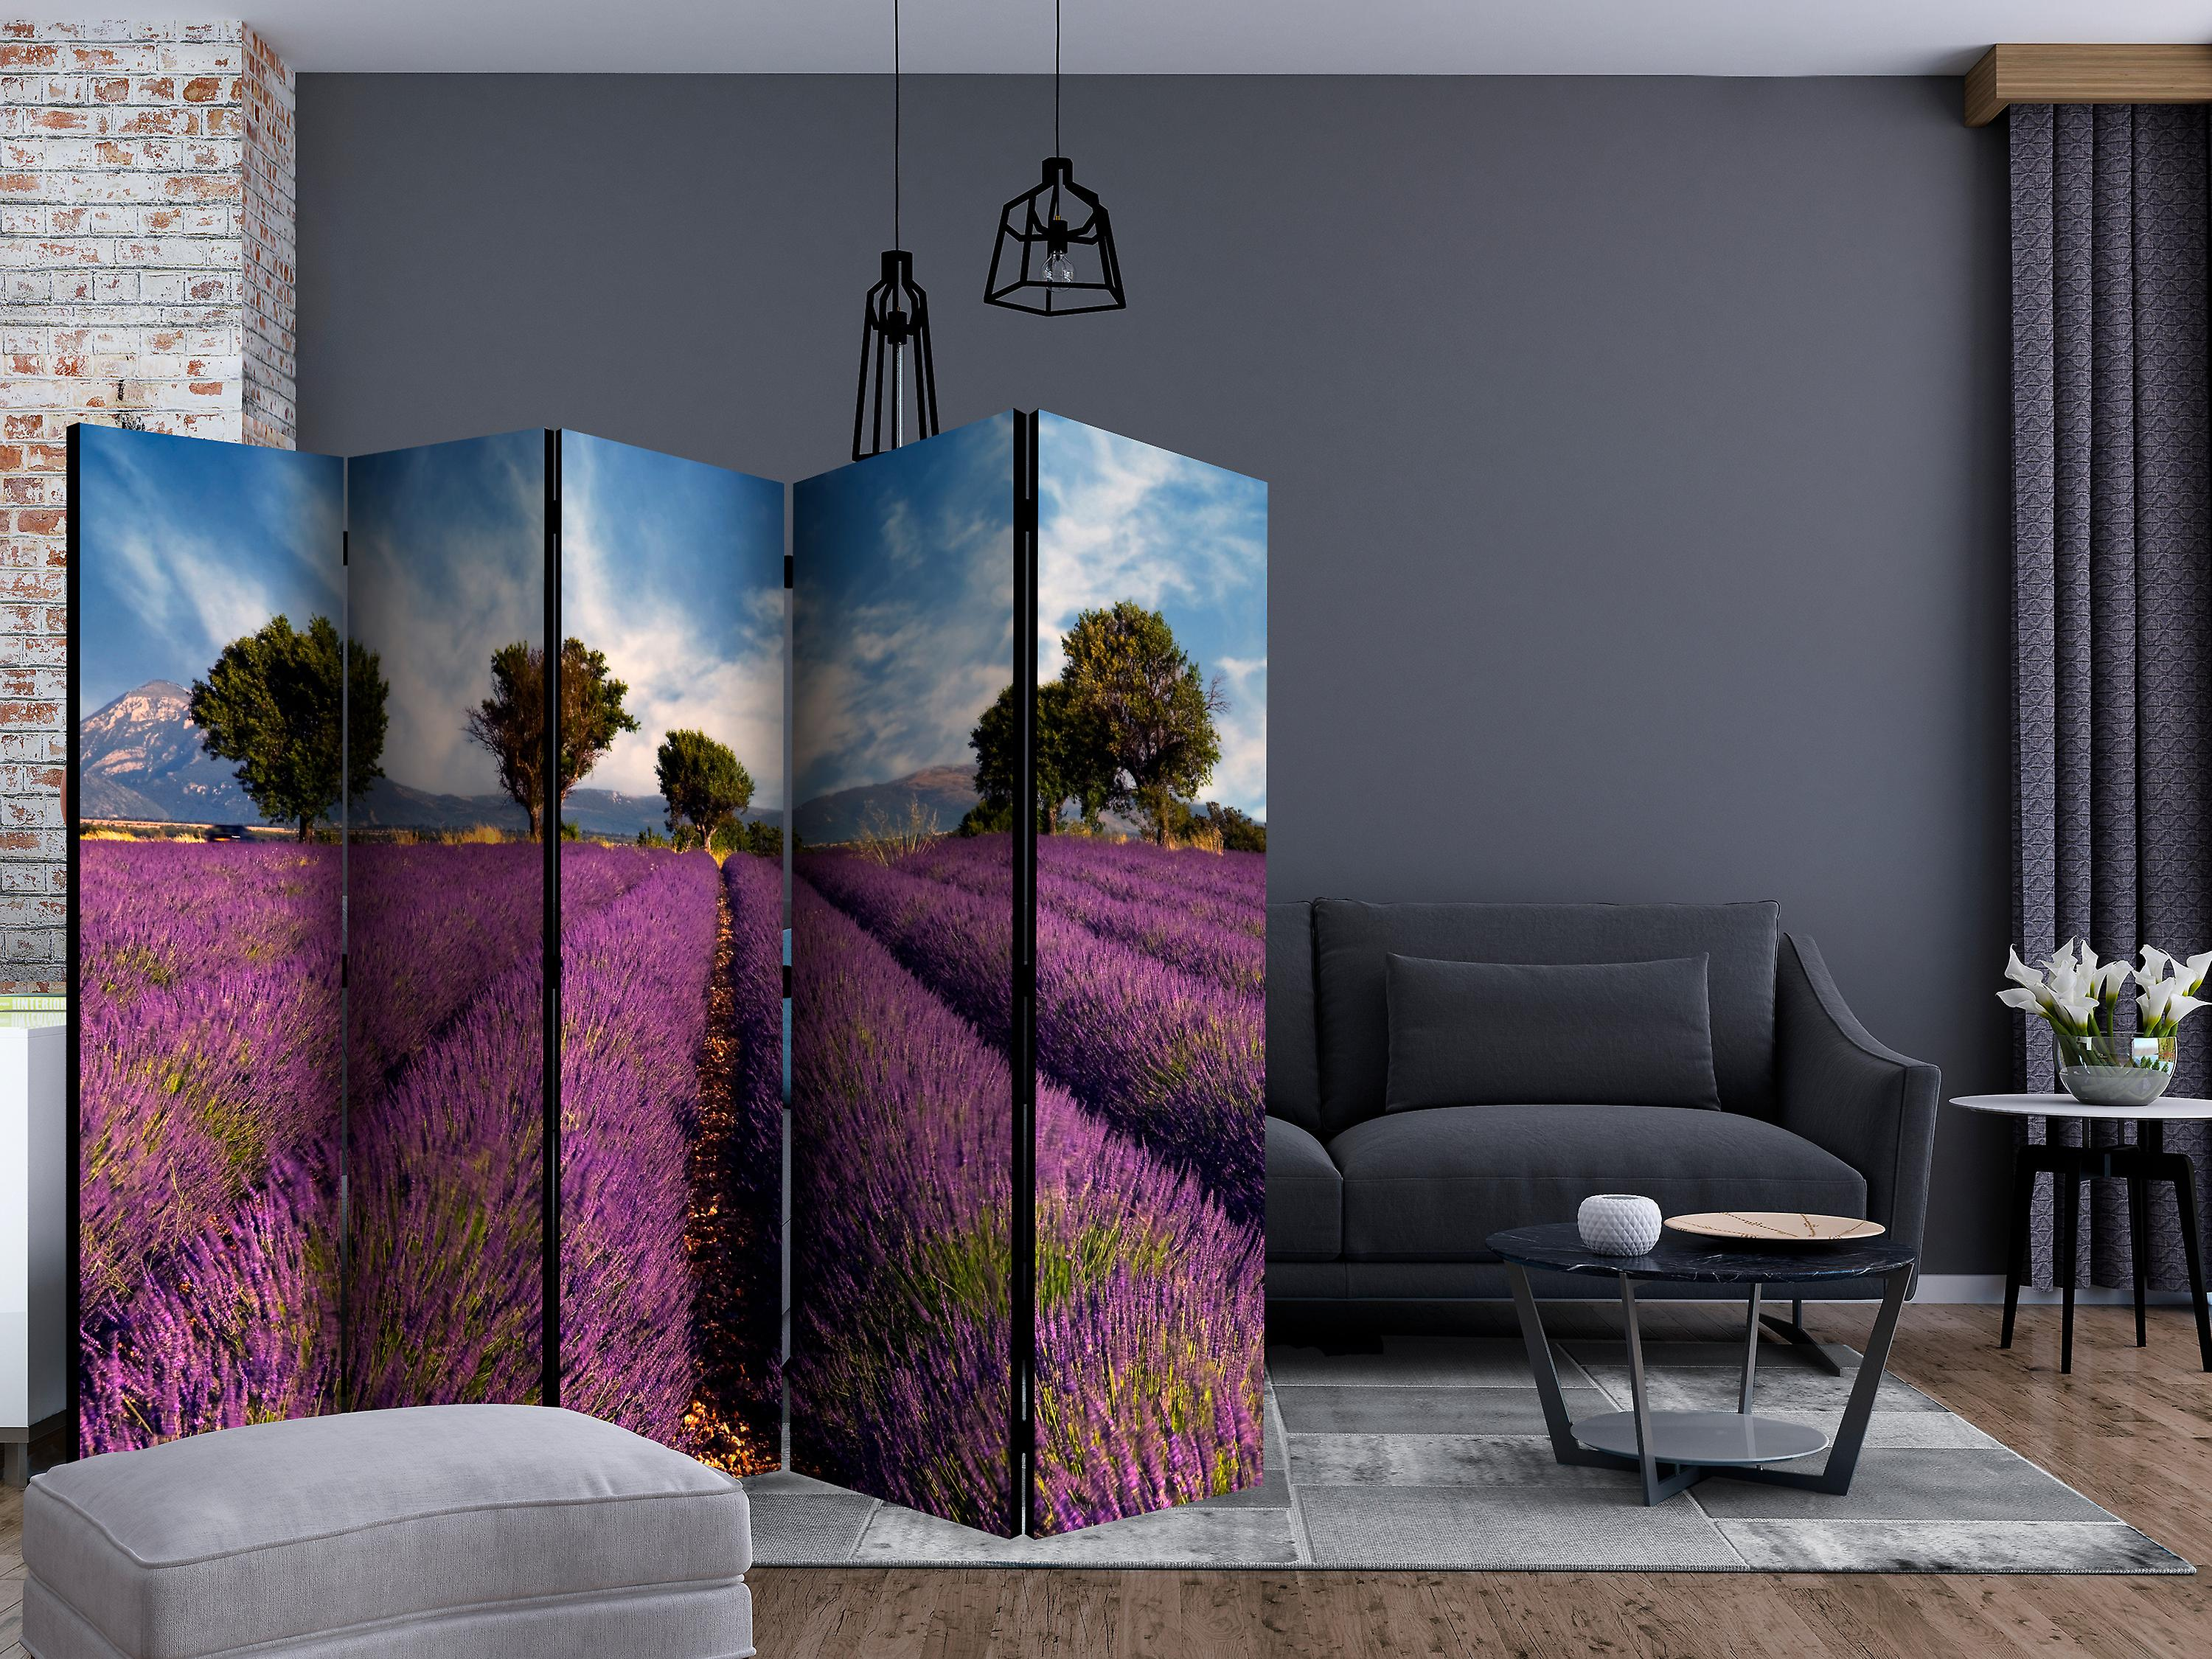 Paravent 5 volets - Lavender field in Provence, France [Room Dividers]